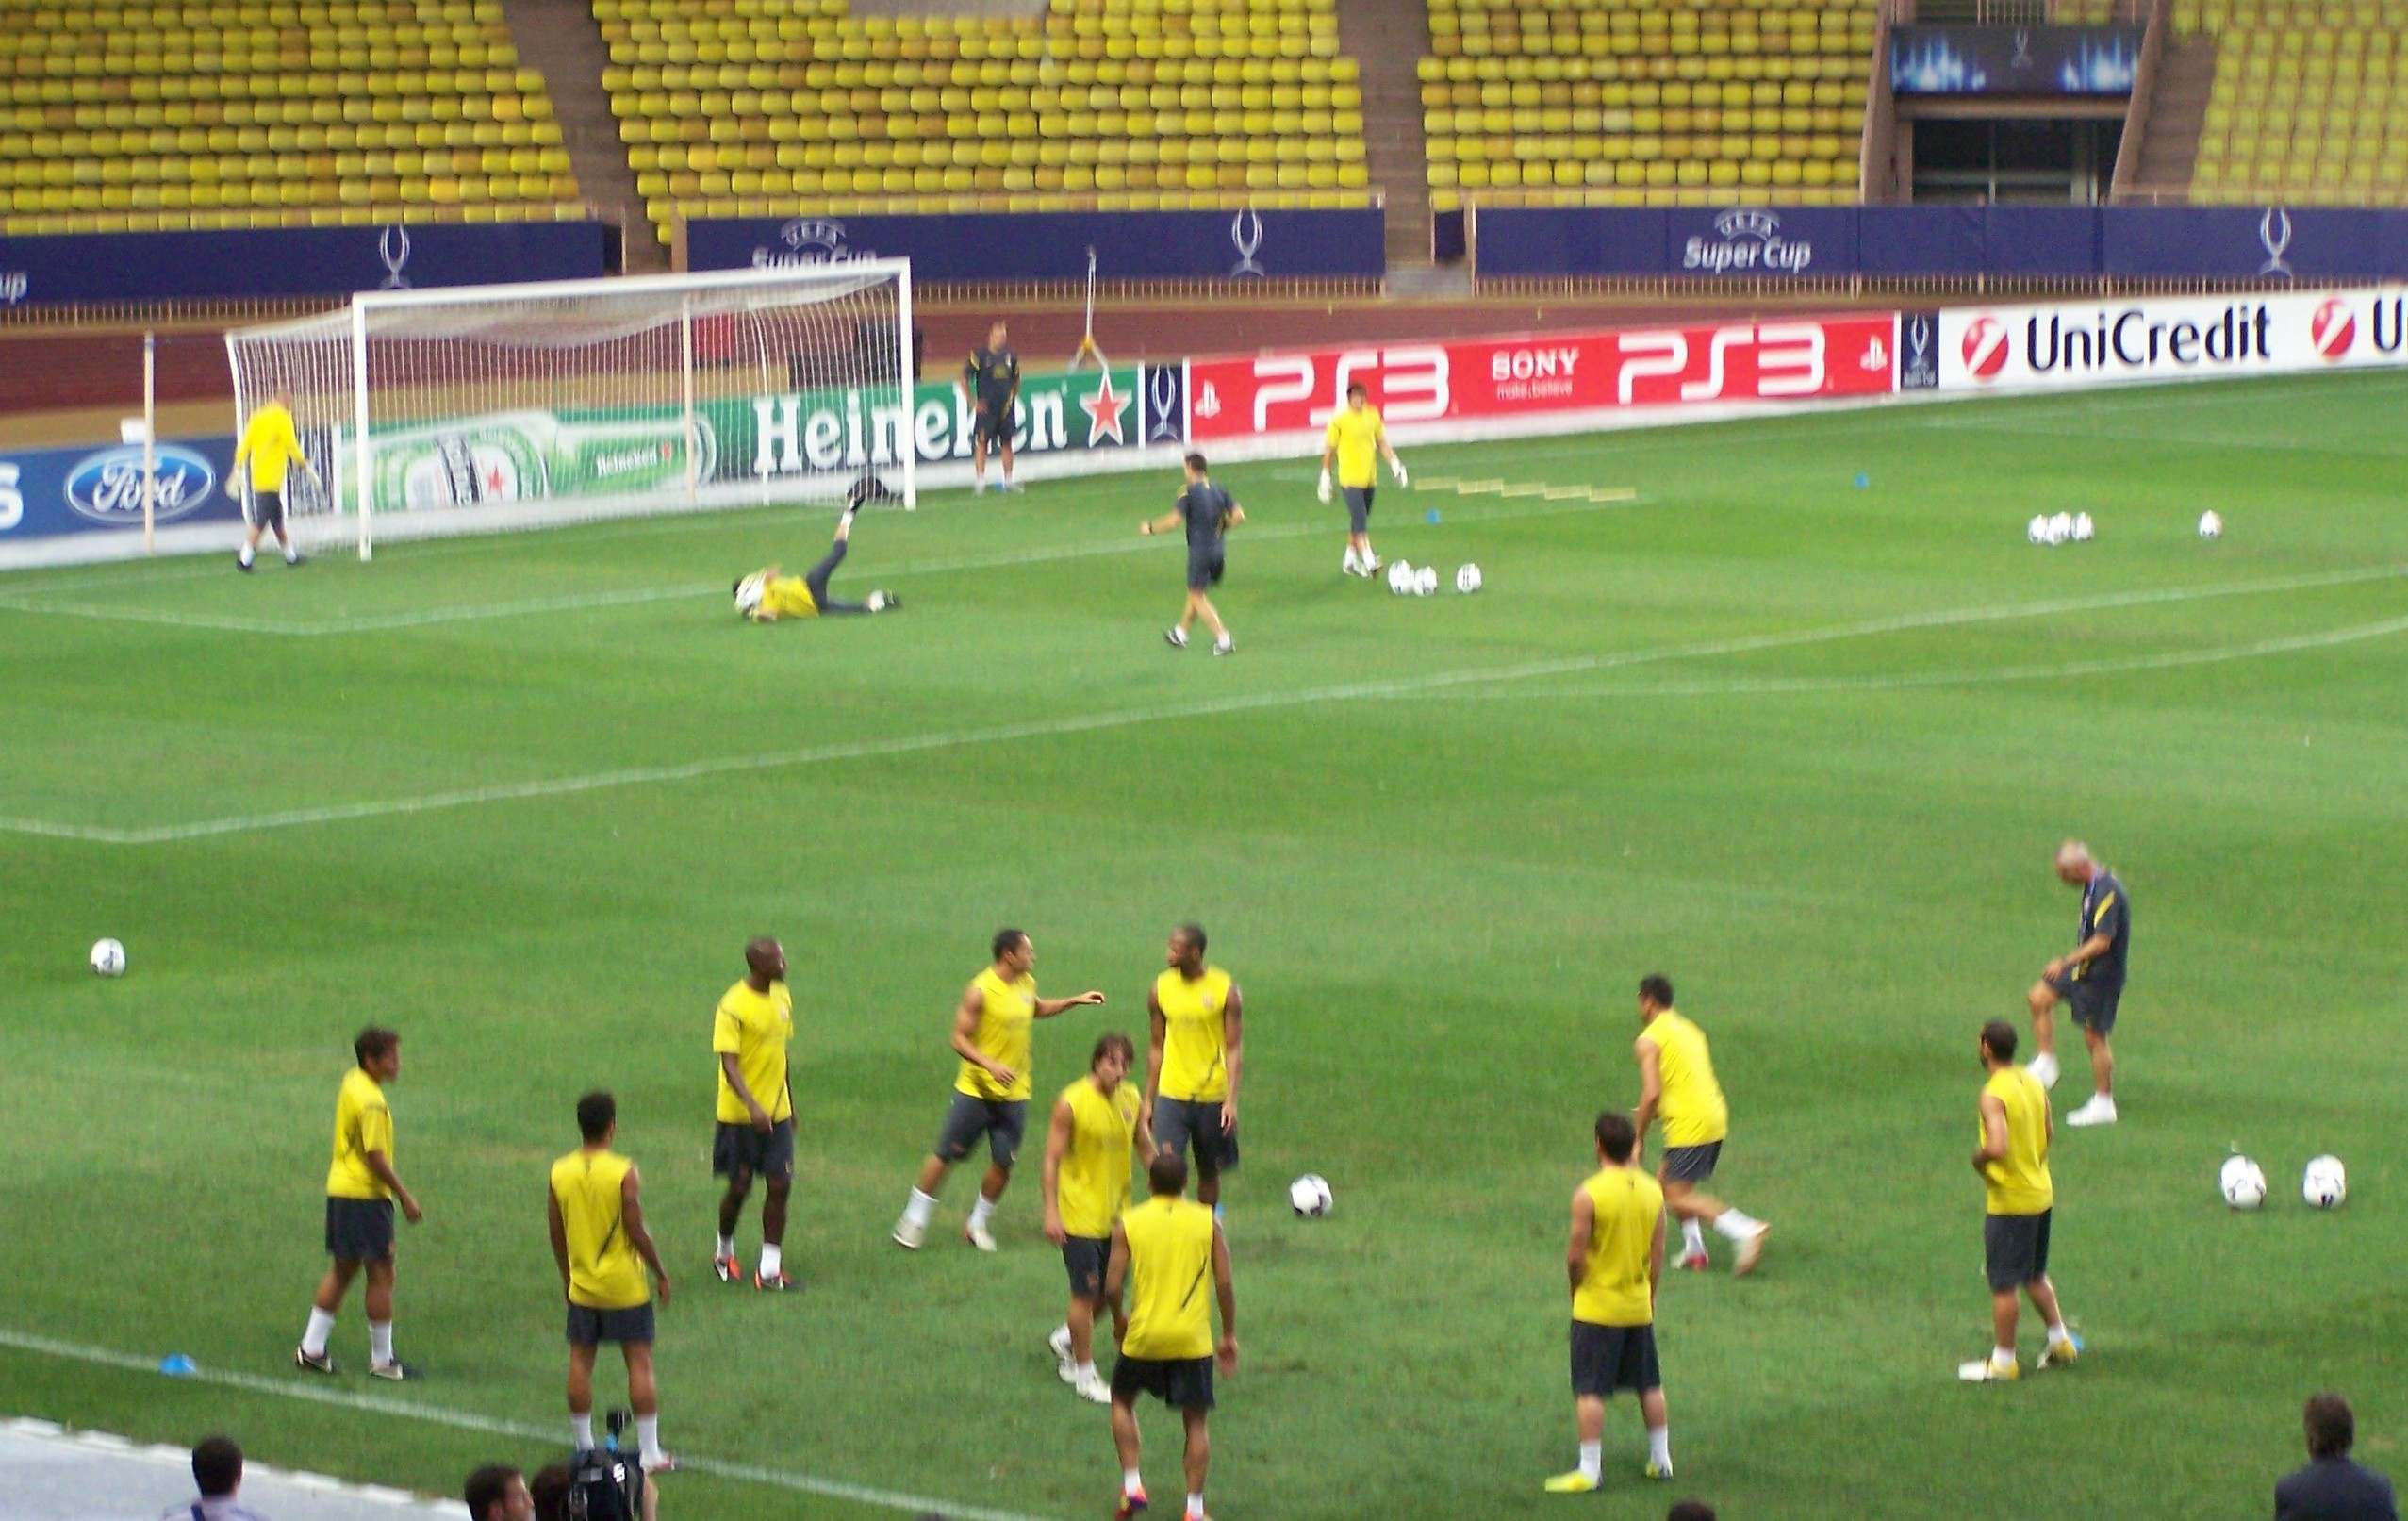 Barcelona players train ahead of 2011 UEFA Super Cup match with Porto